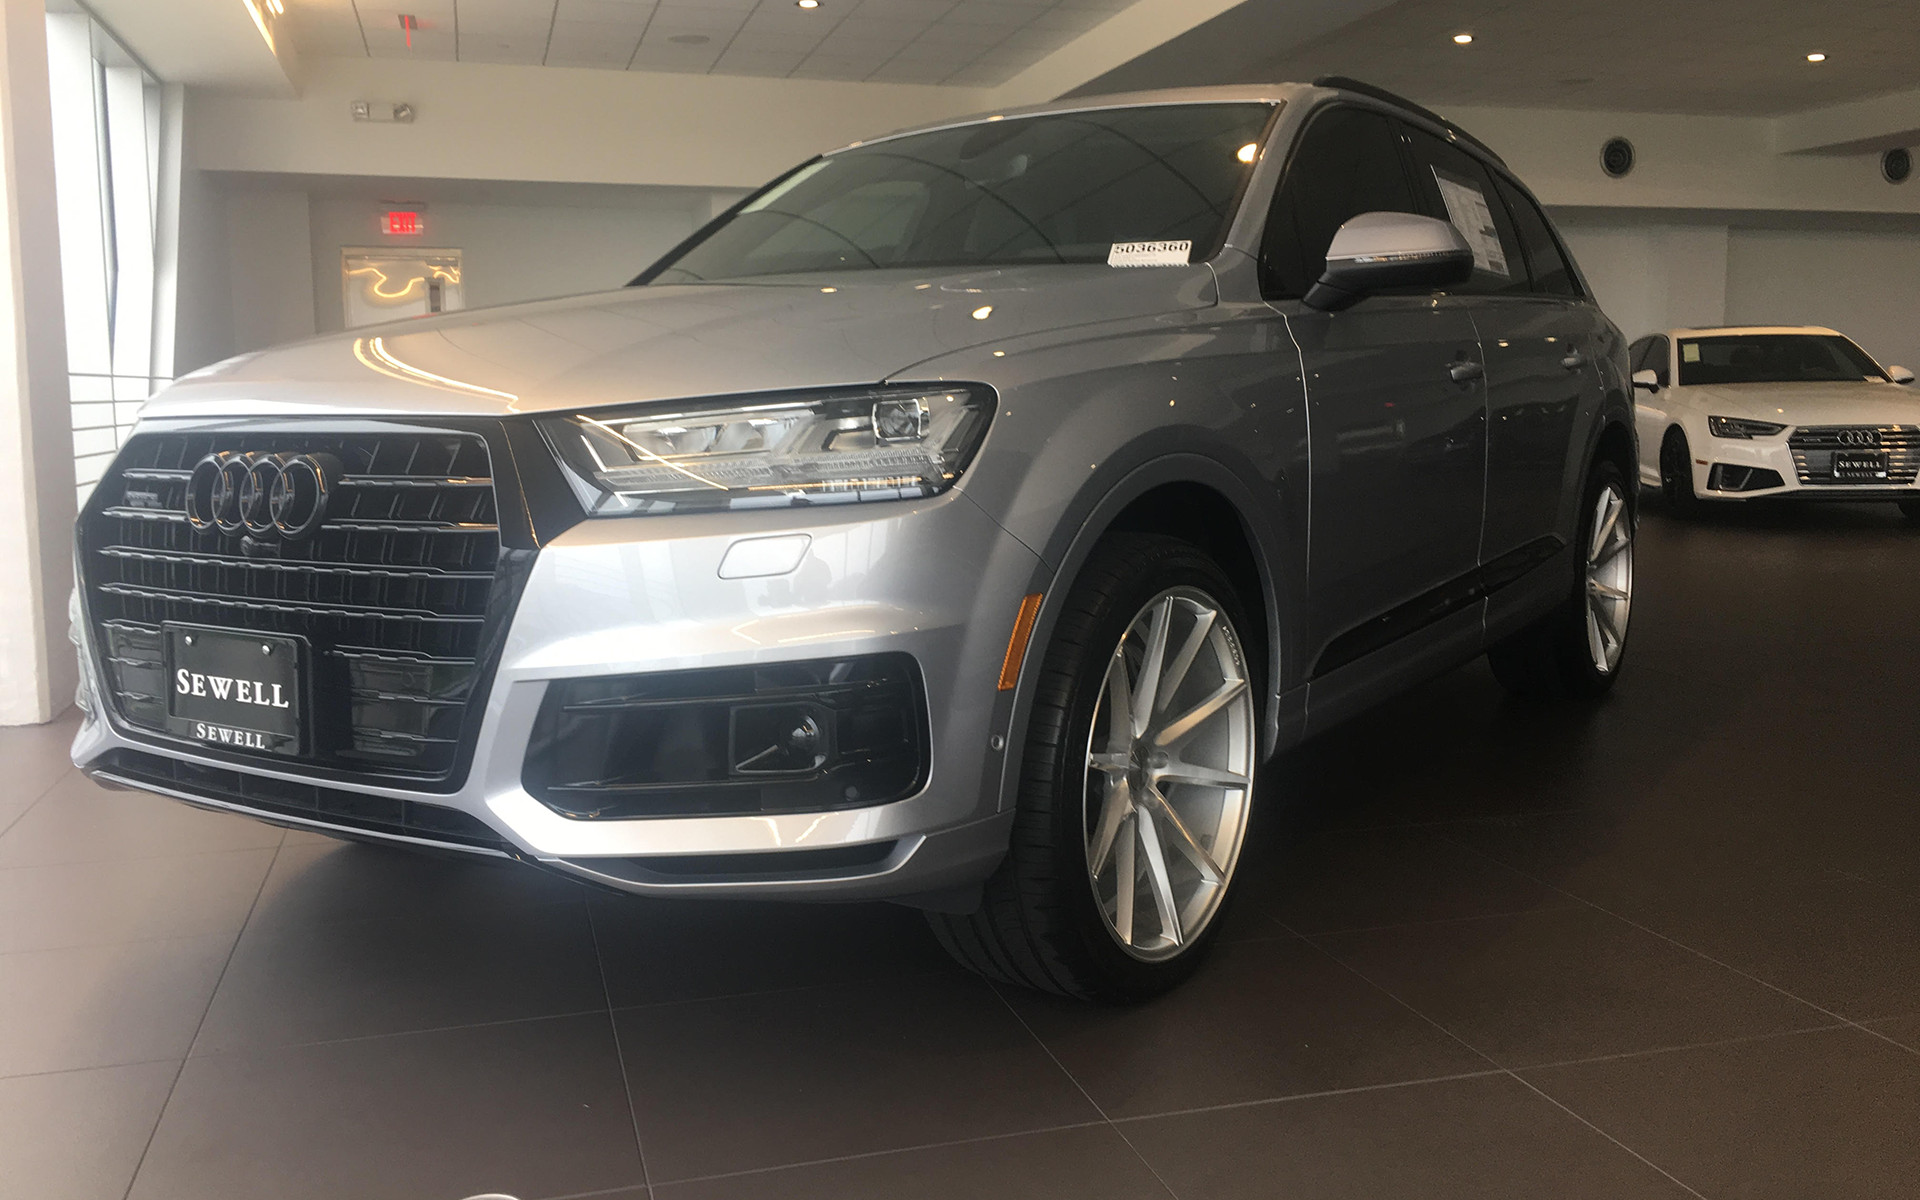 Audi Q7 with Vossen VFS1 22x10.5 Pirelli P Zero 285/35-22 Blackout package